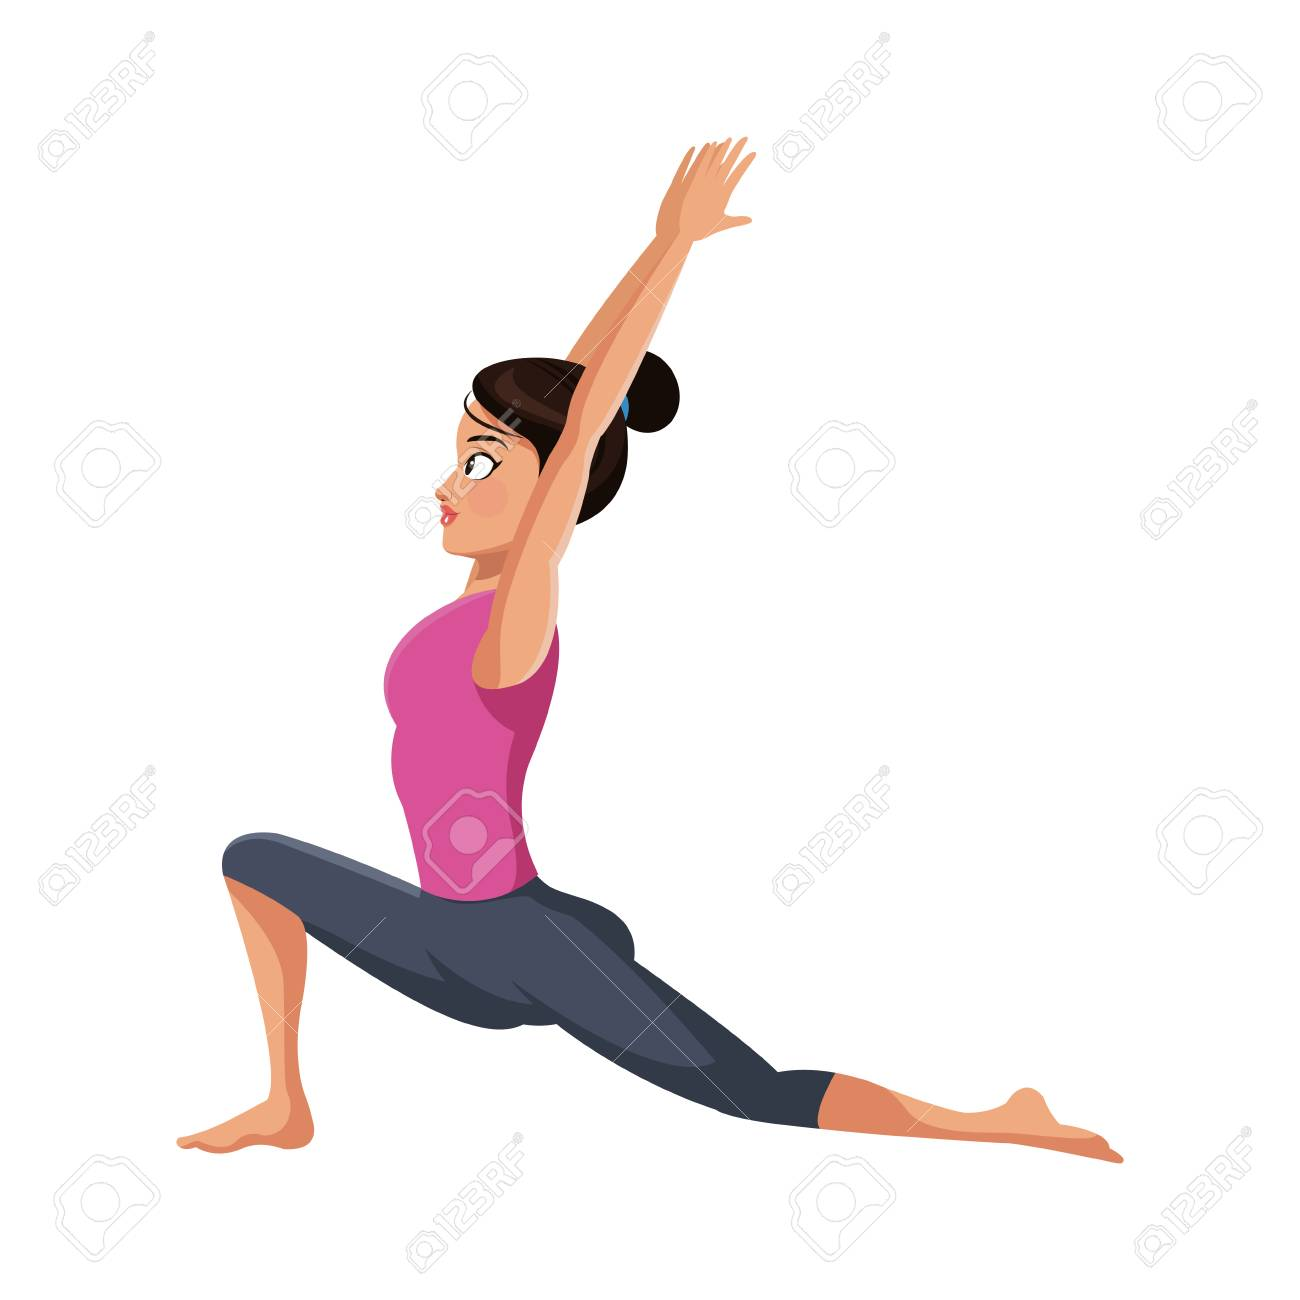 Girl Doing Yoga Cartoon Icon Over White Background Colorful Royalty Free Cliparts Vectors And Stock Illustration Image 75578882